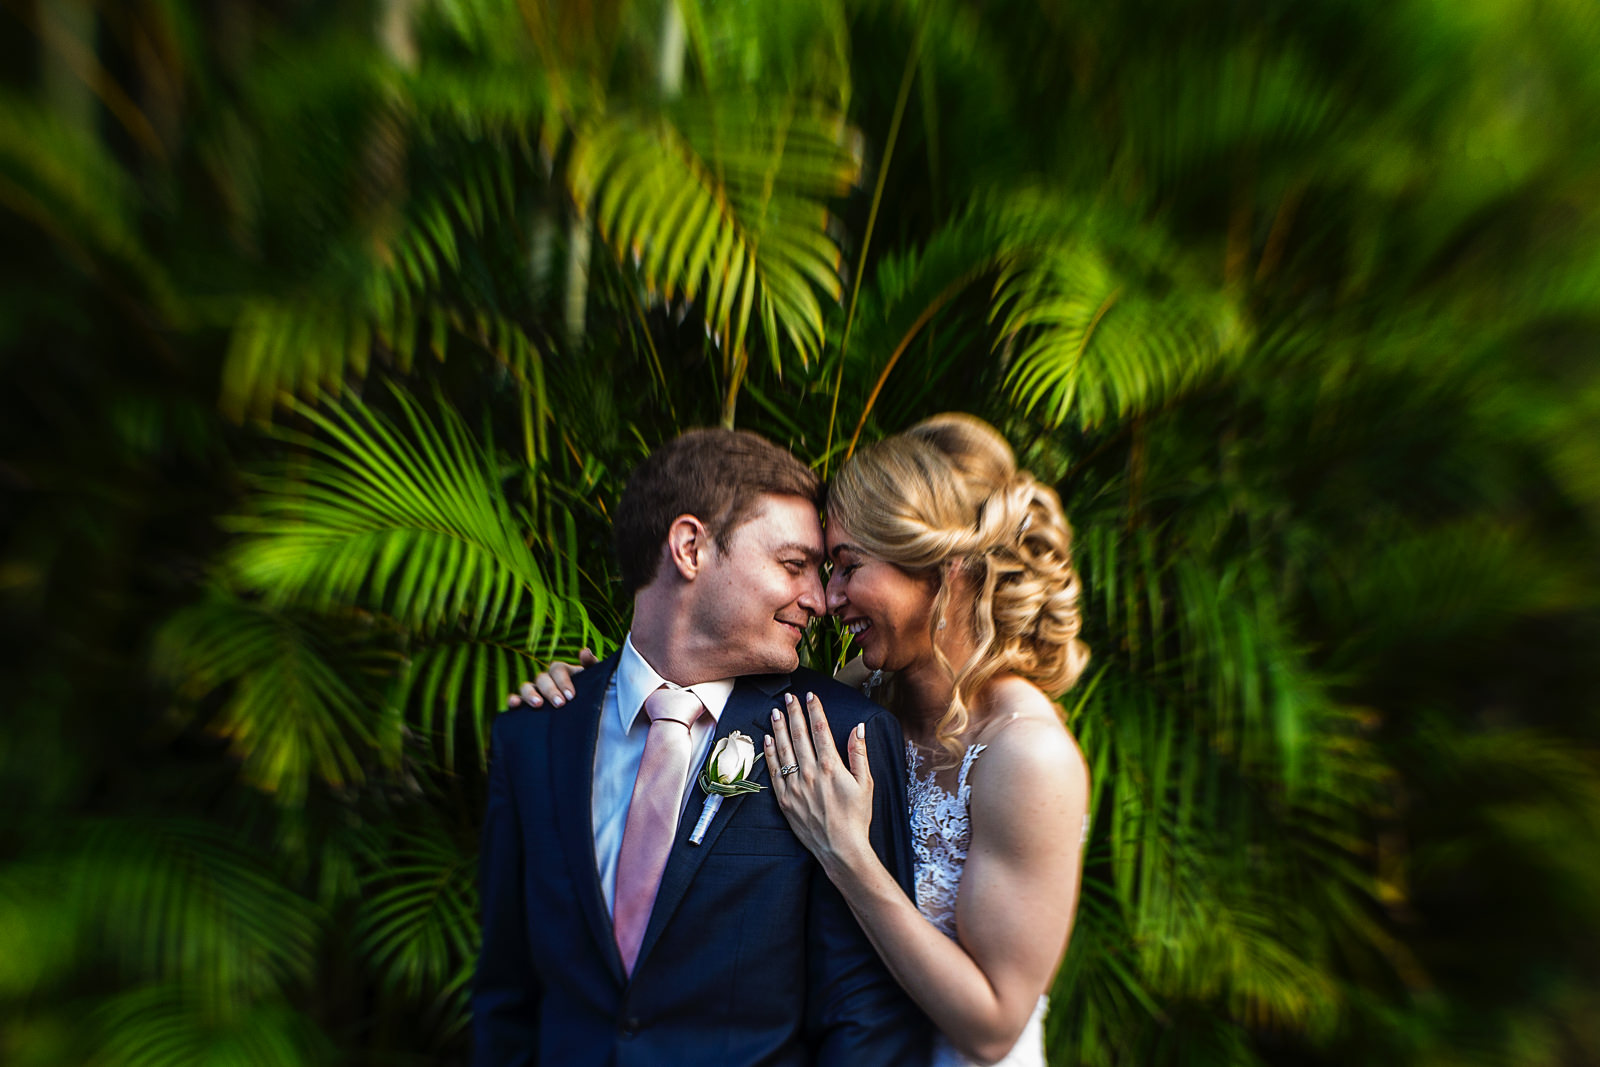 vallarta-wedding-playa-fiesta-couple-bride-groom-palm-trees-lens-baby.jpg